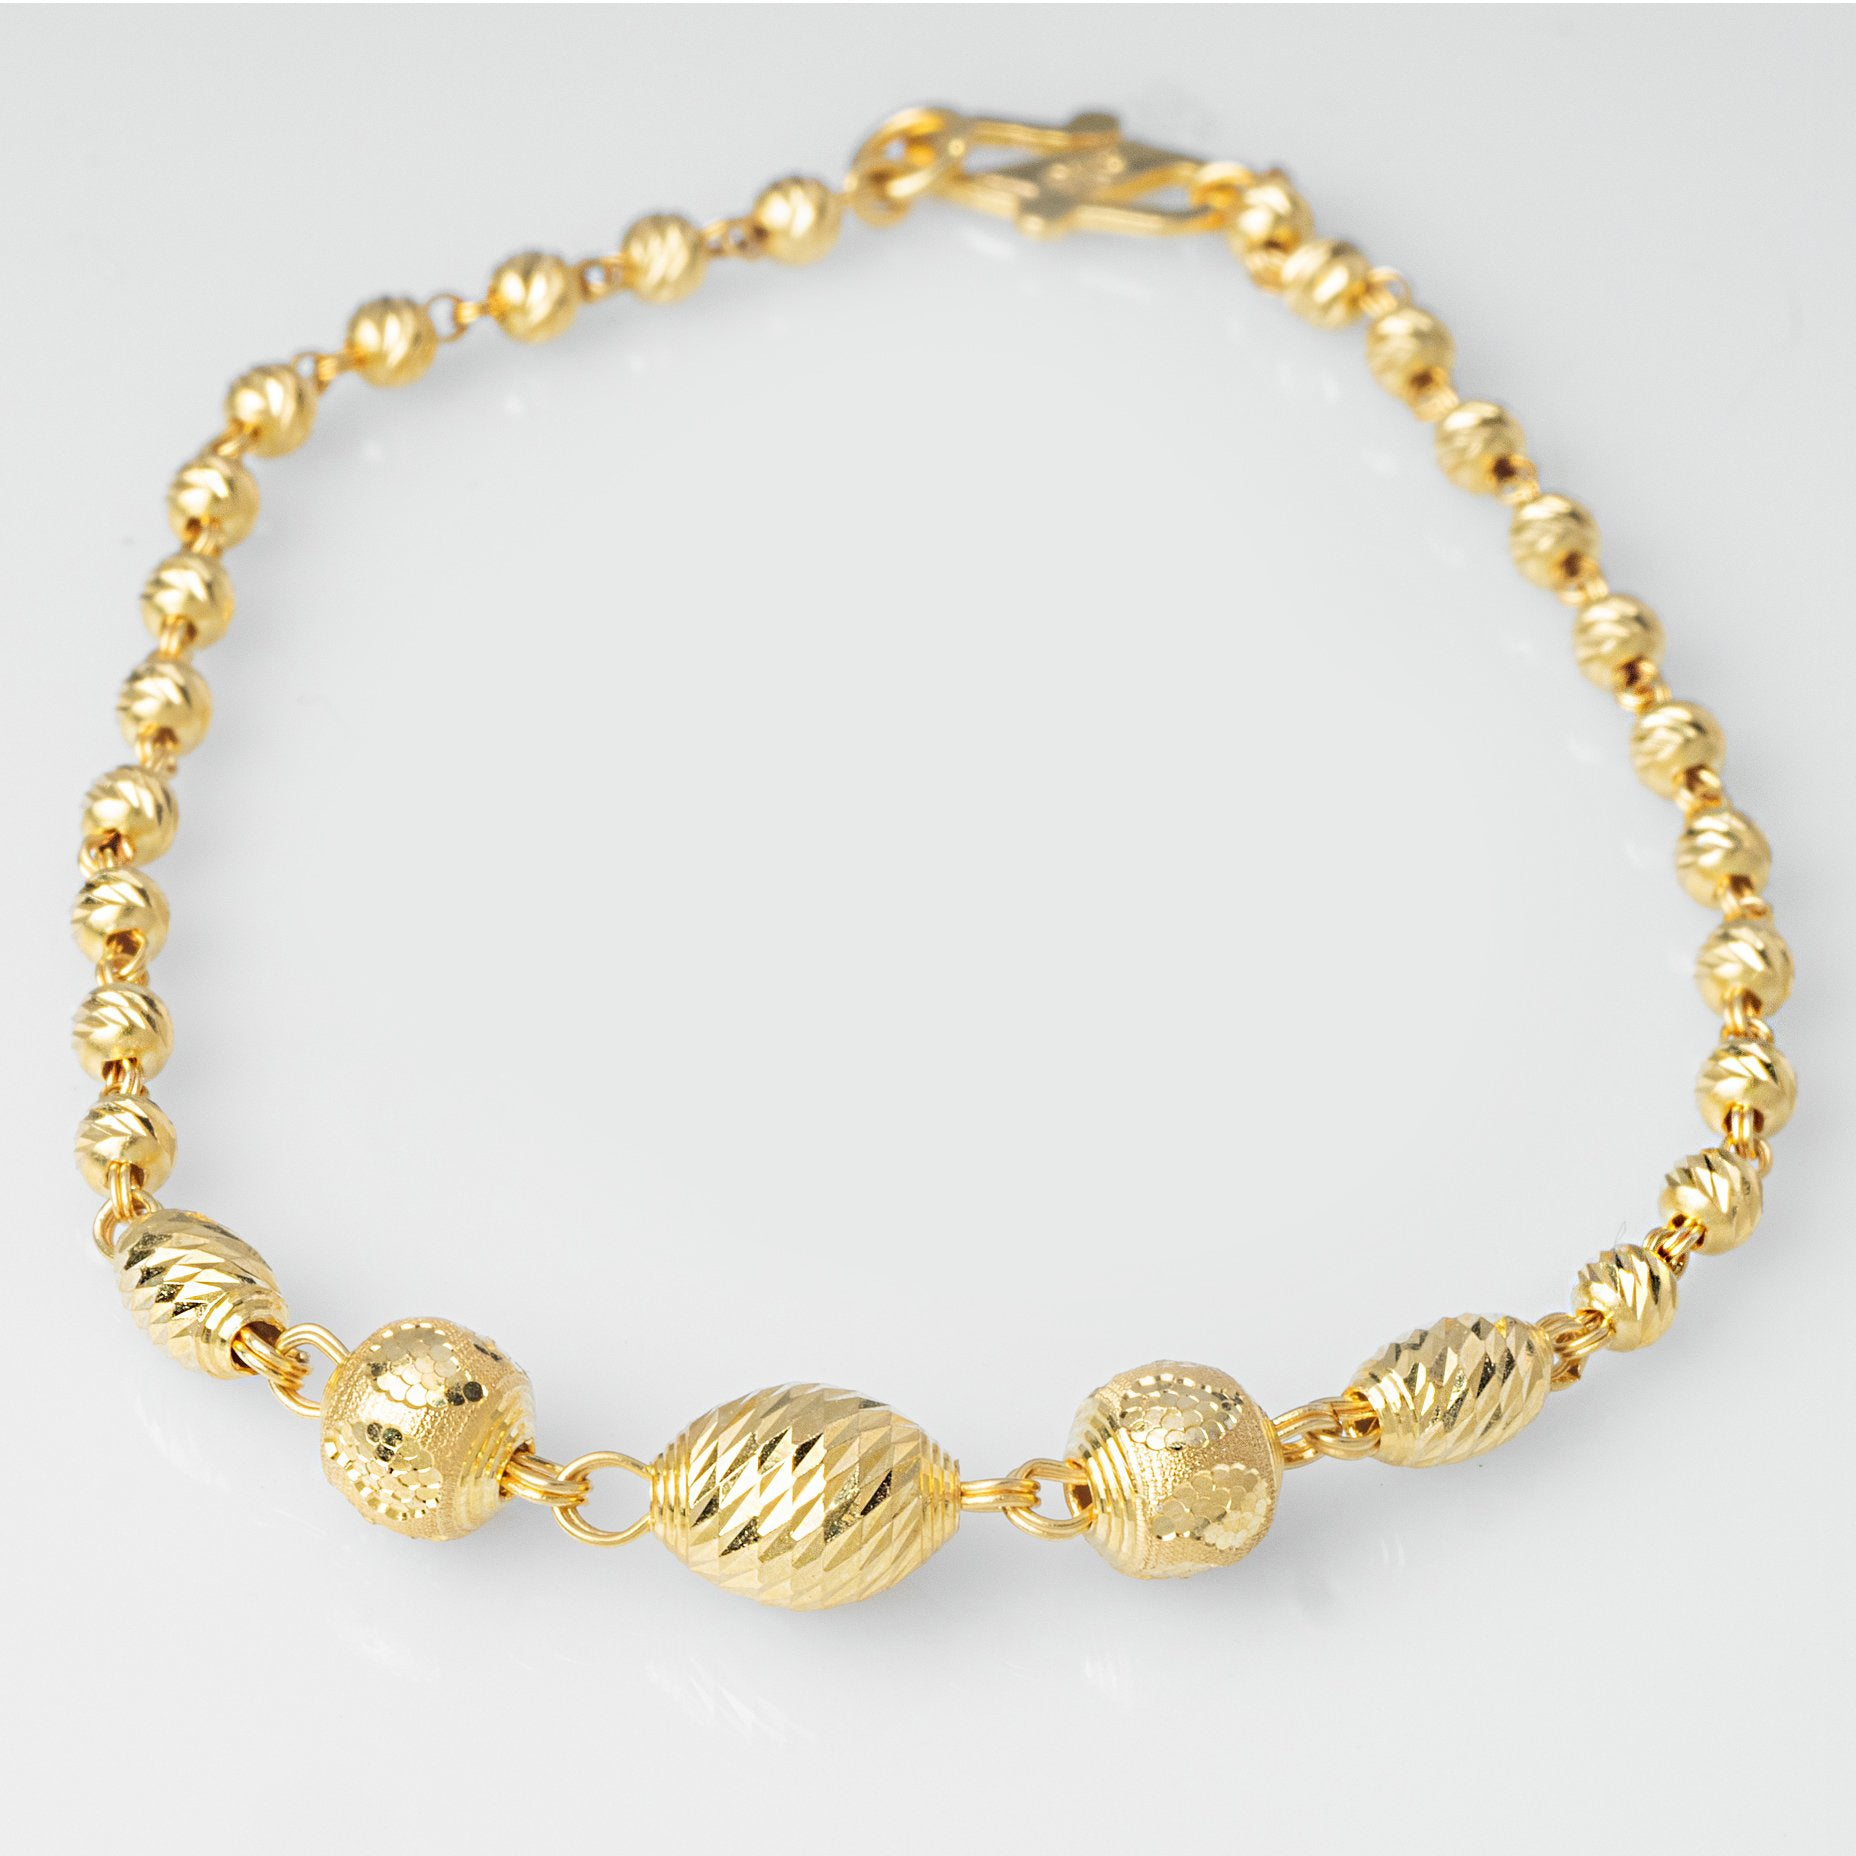 22ct Gold Diamond Cut Bead Bracelet (4.6g) LBR-7739